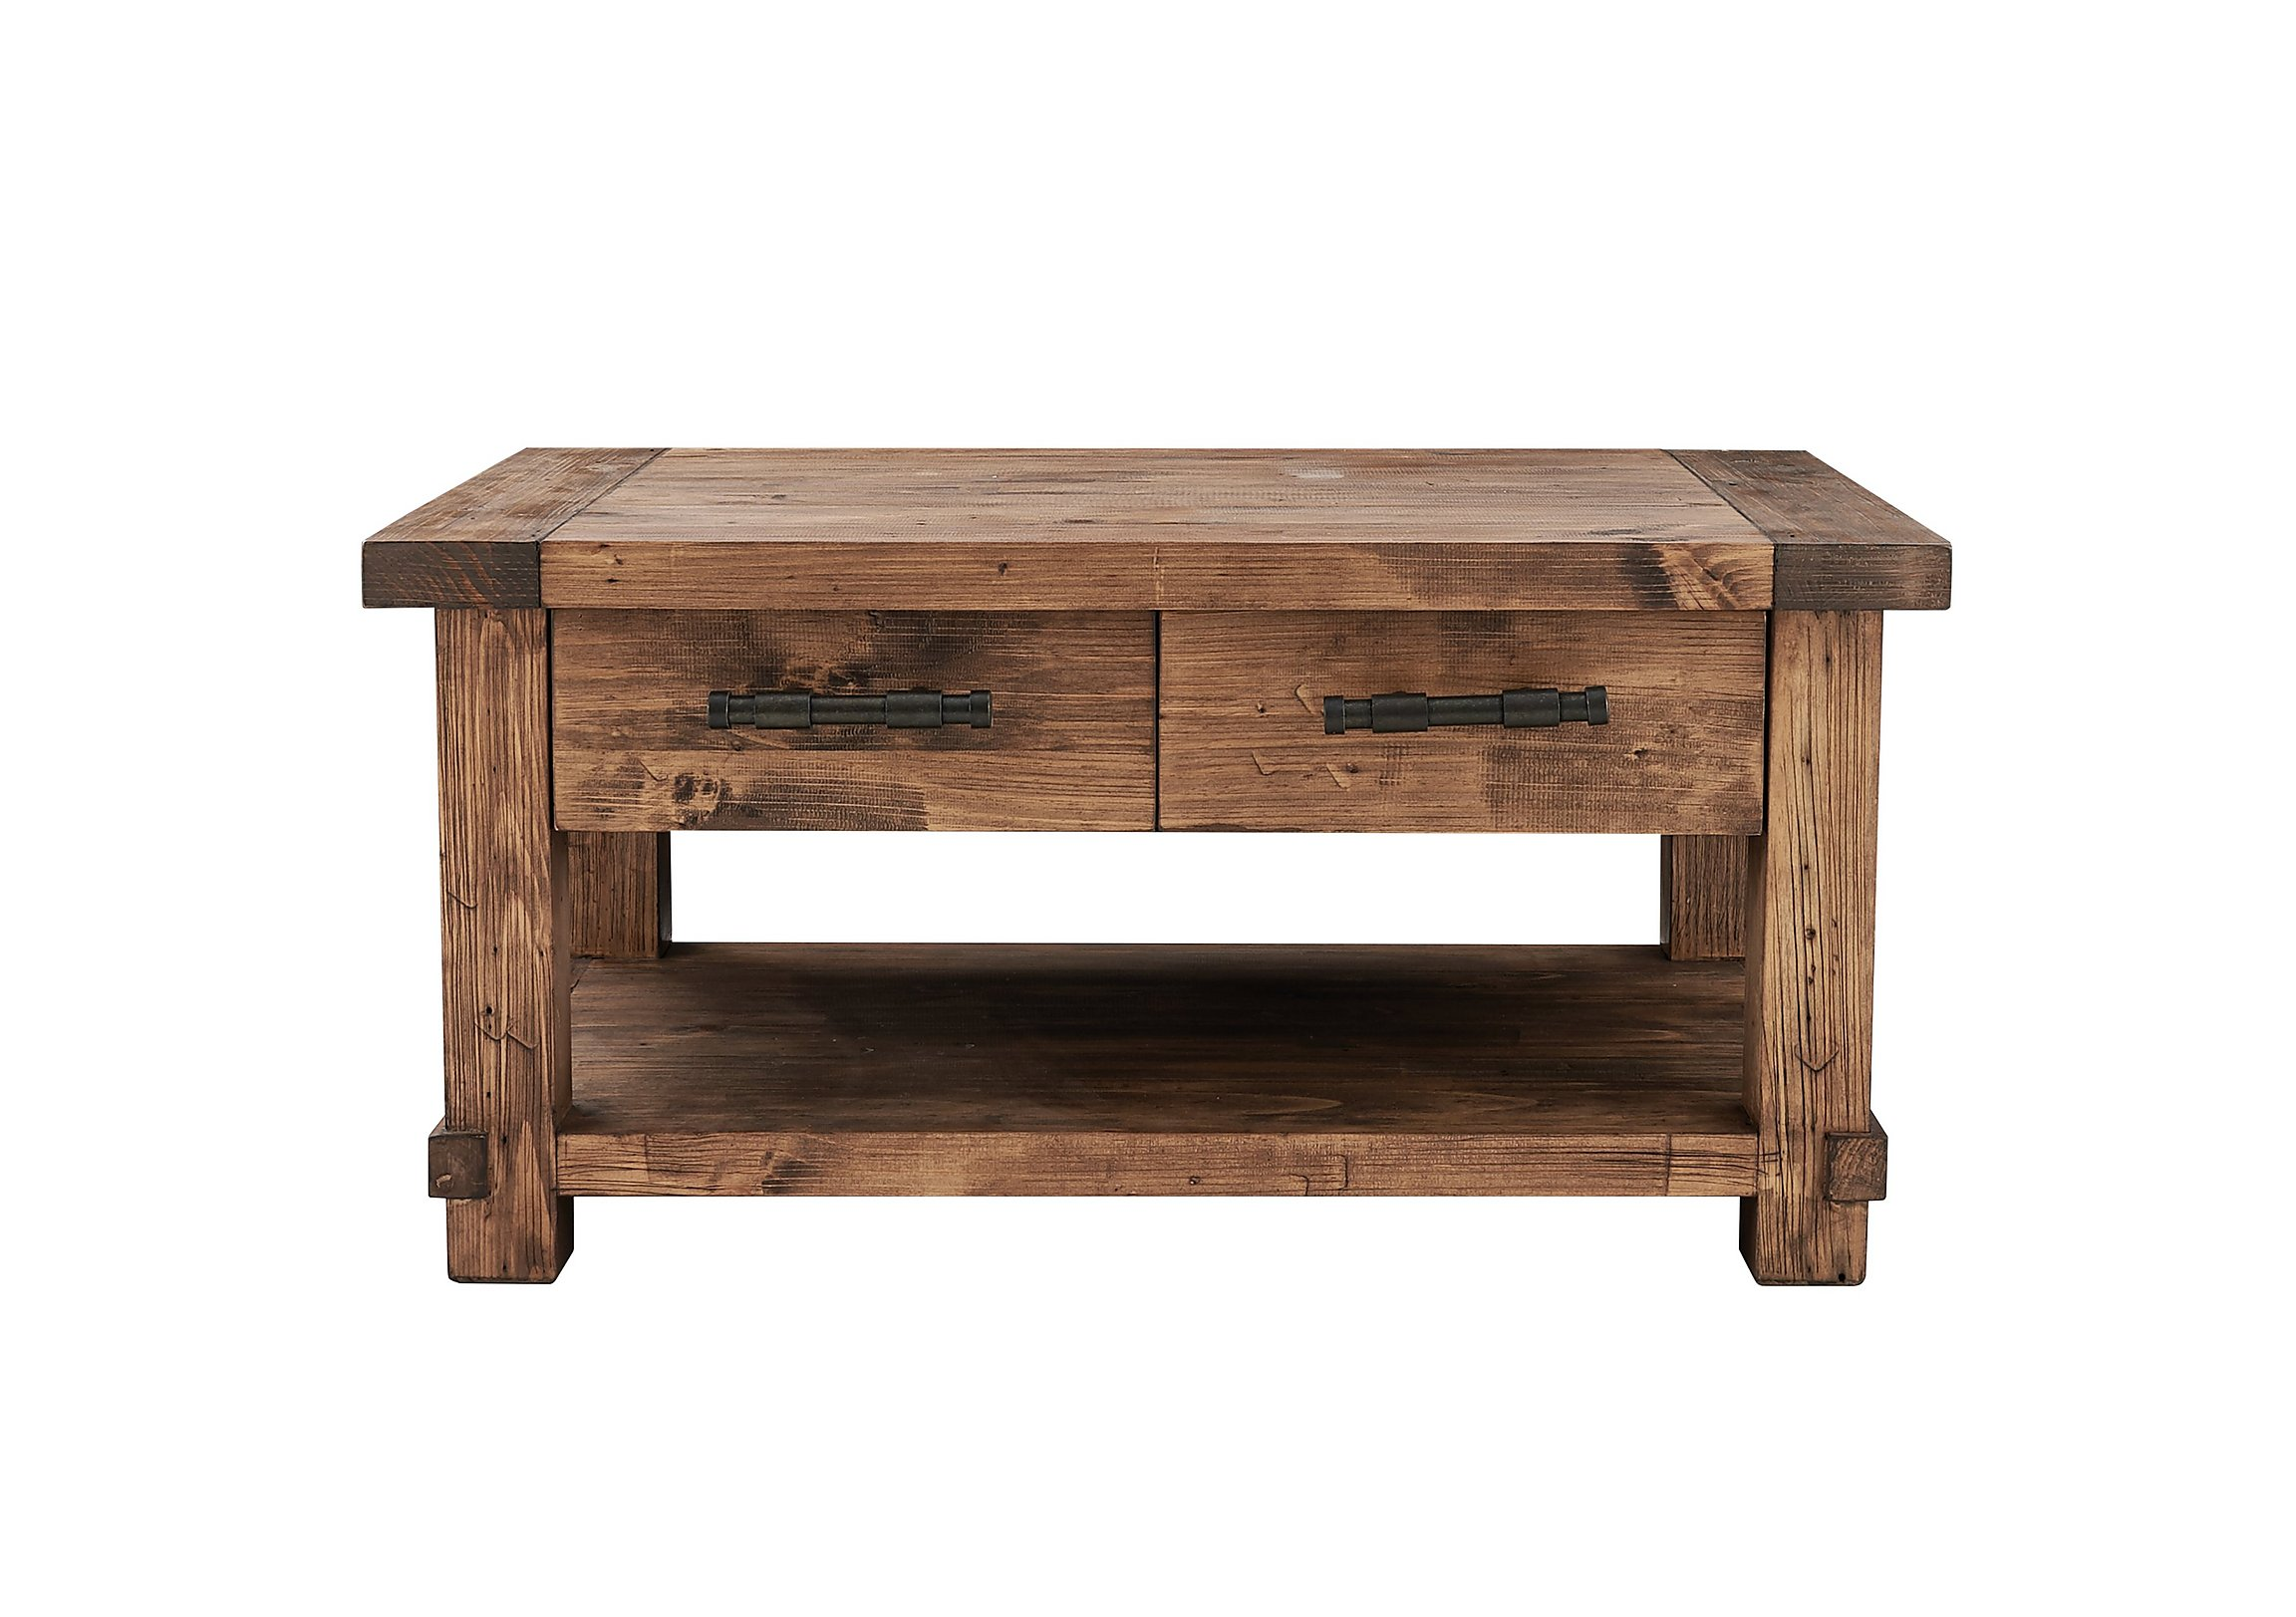 Eco small wooden coffee table furniture village eco small wooden coffee table loading images geotapseo Choice Image